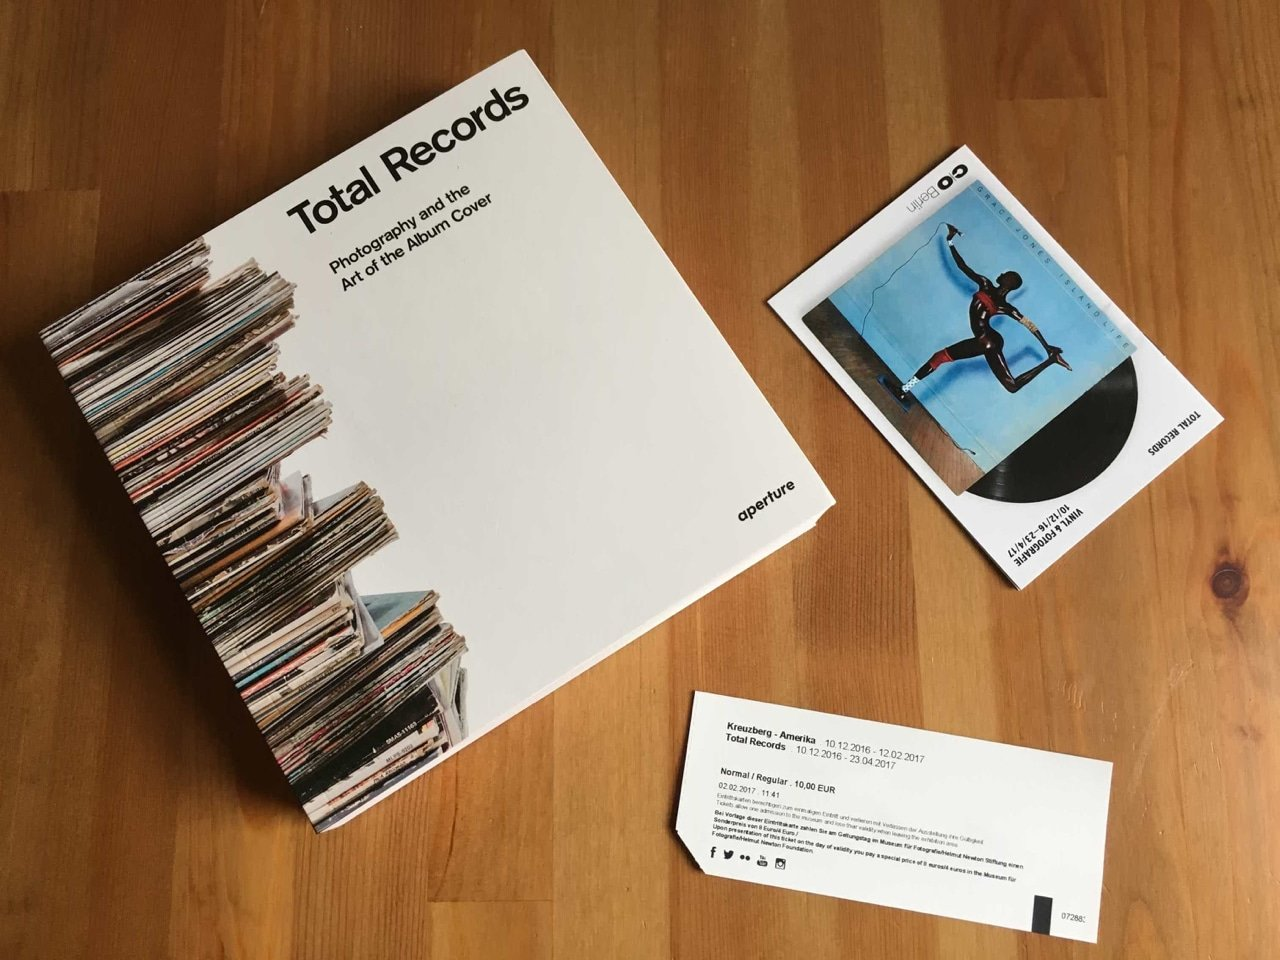 Total Records - Vinyl & Fotografie